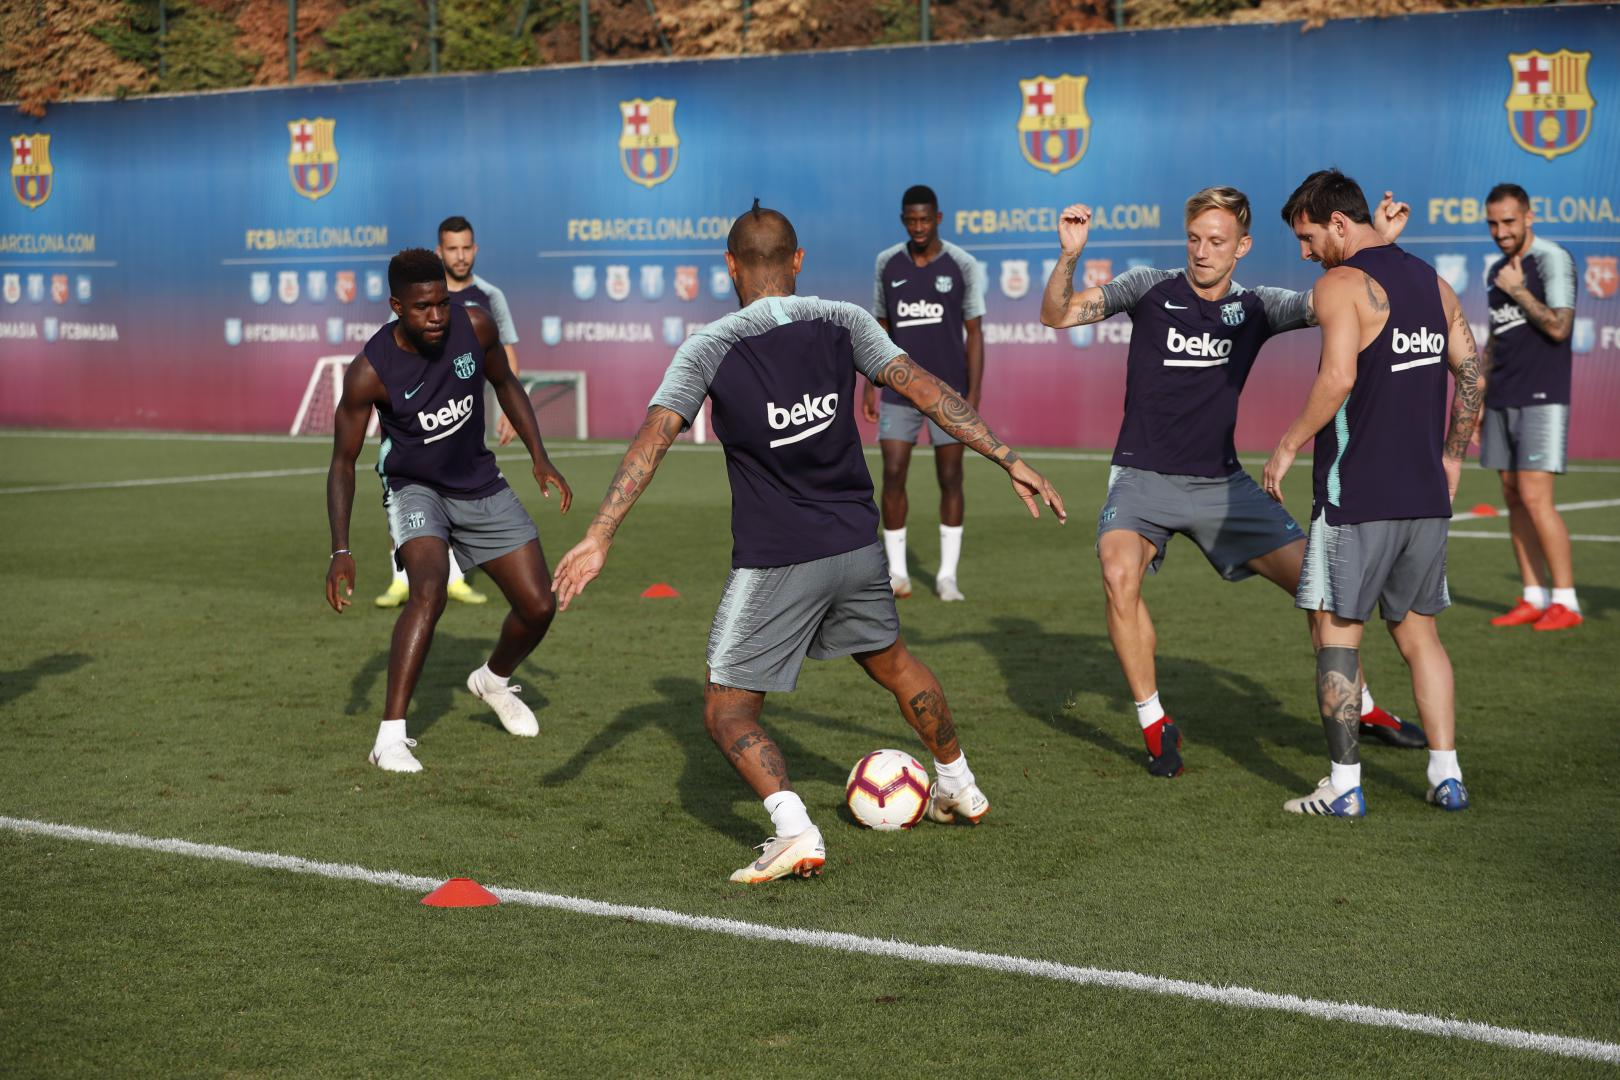 Barca Hunt For Away Win At The 'Dreaded' Real Valladolid's Zorrilla